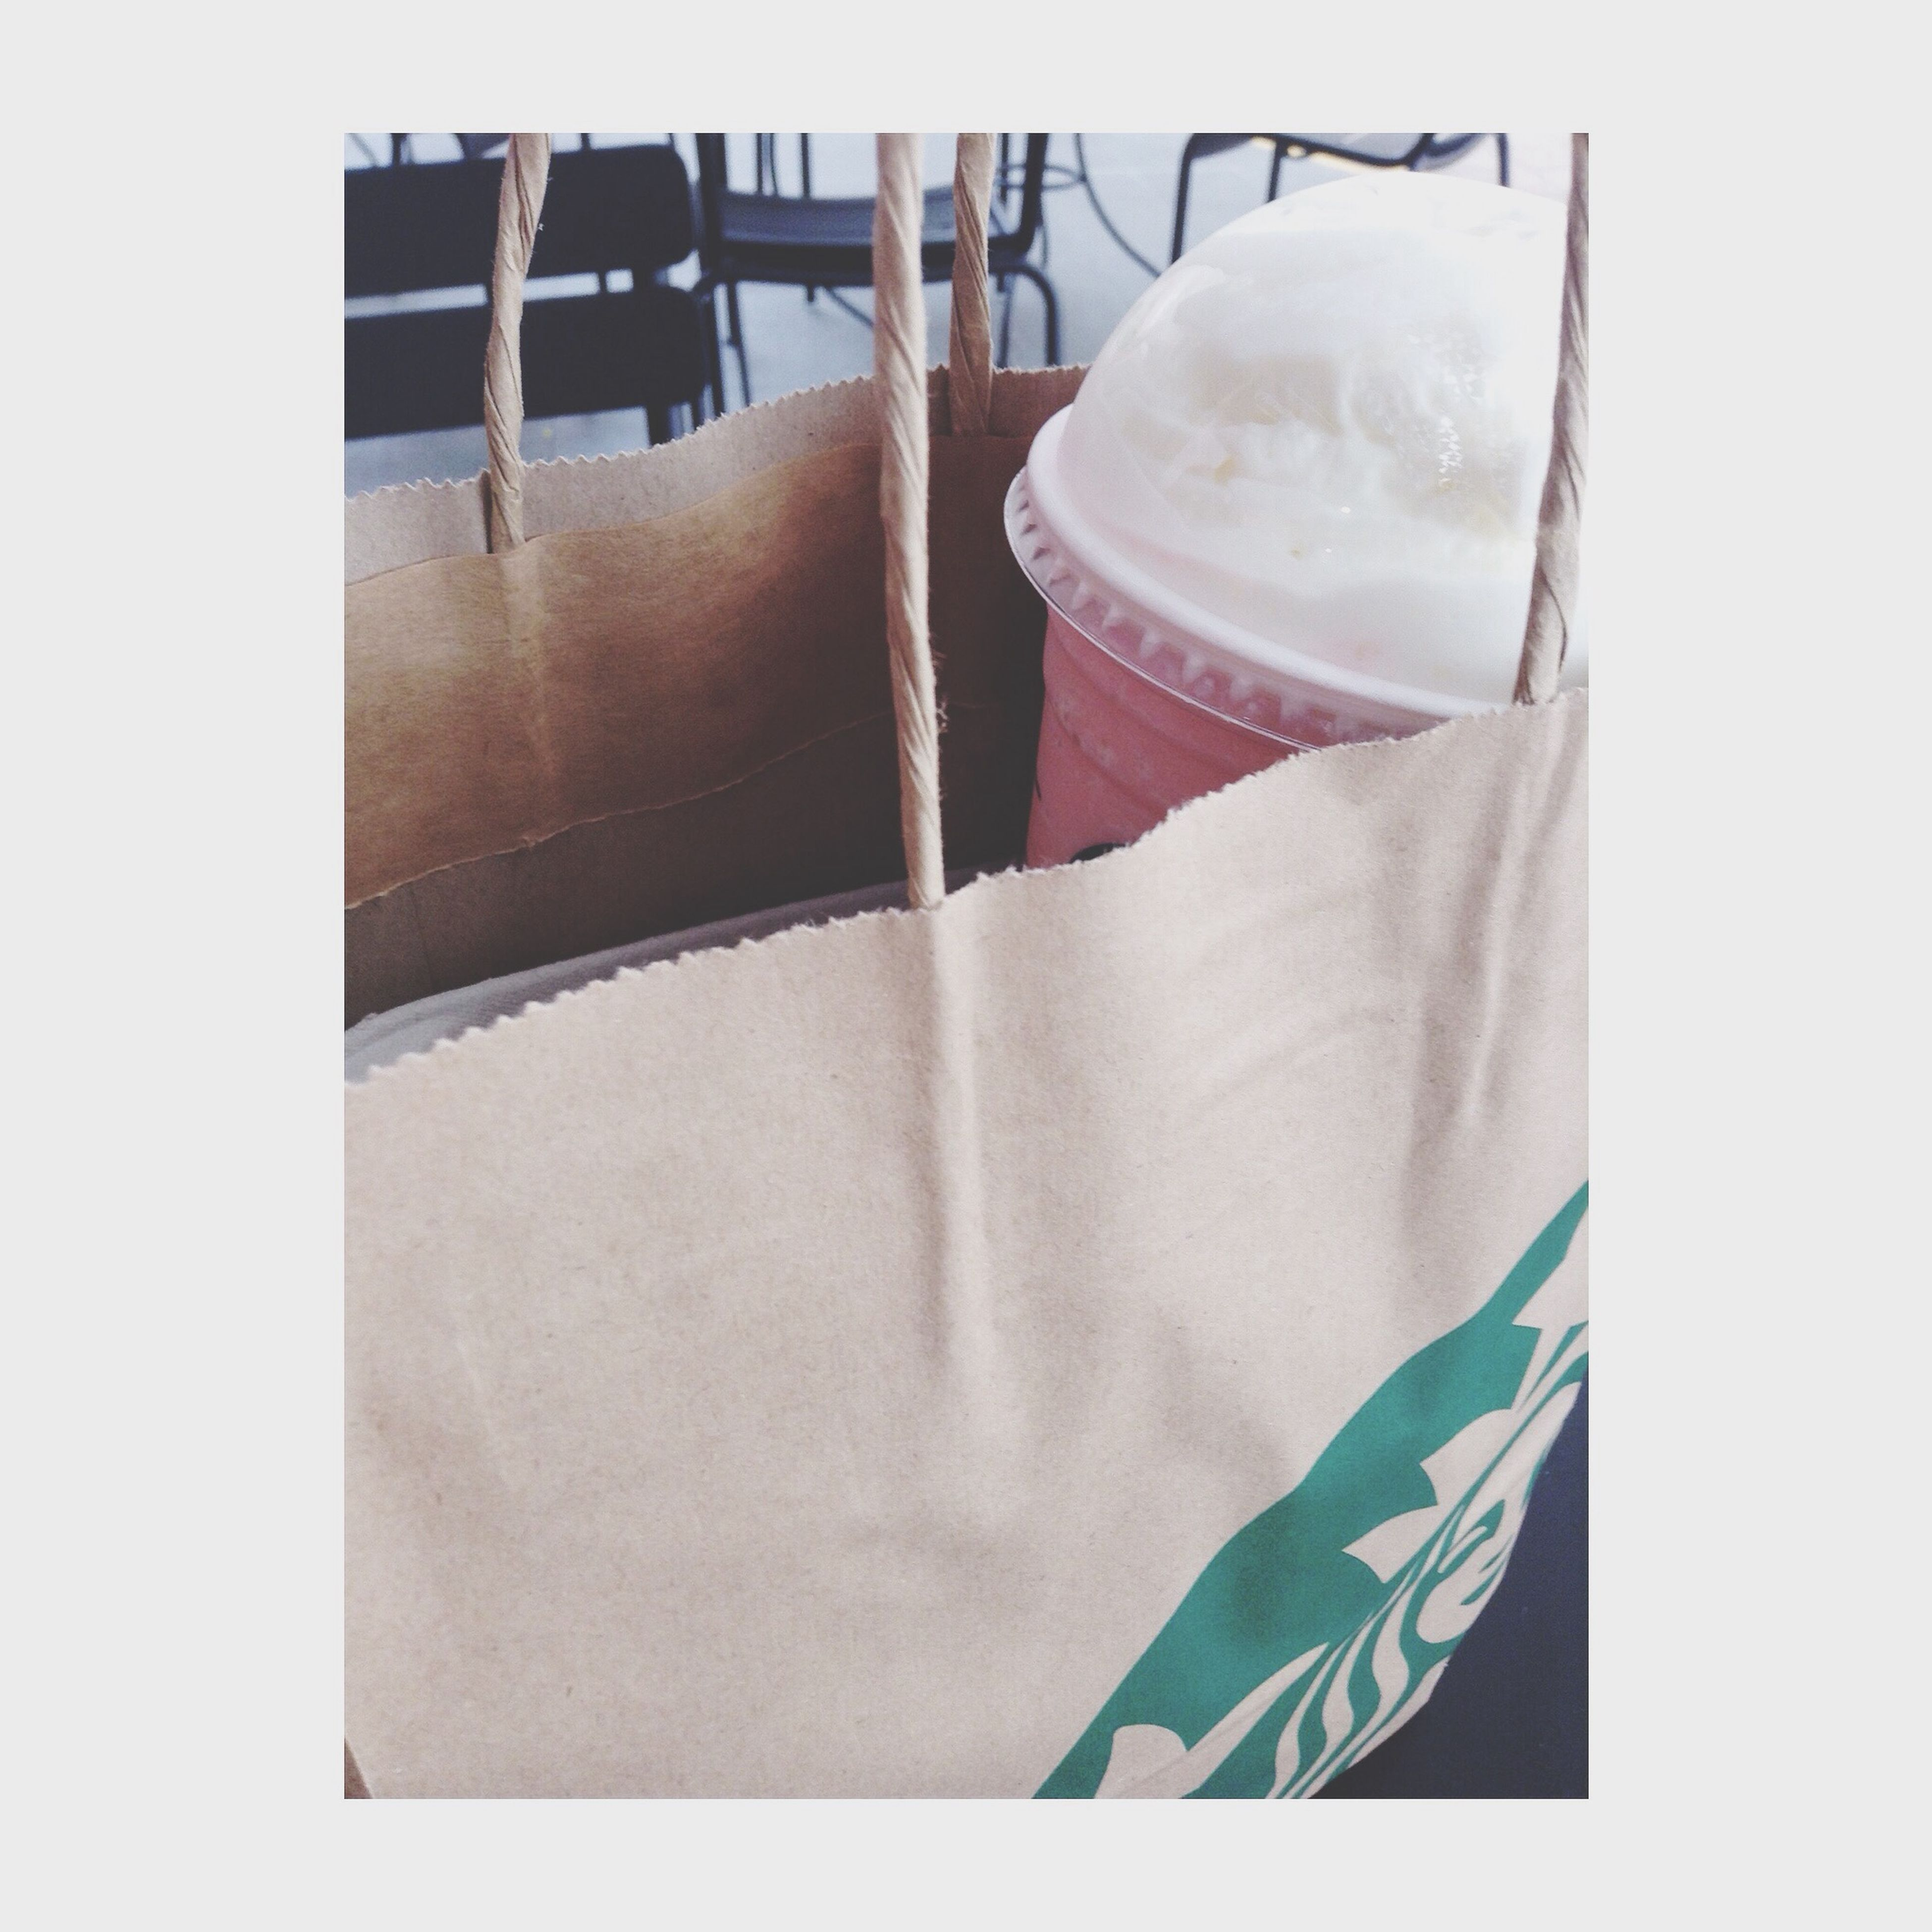 ; Breakfast , cotton candy frap & NY cheesecake ✌️